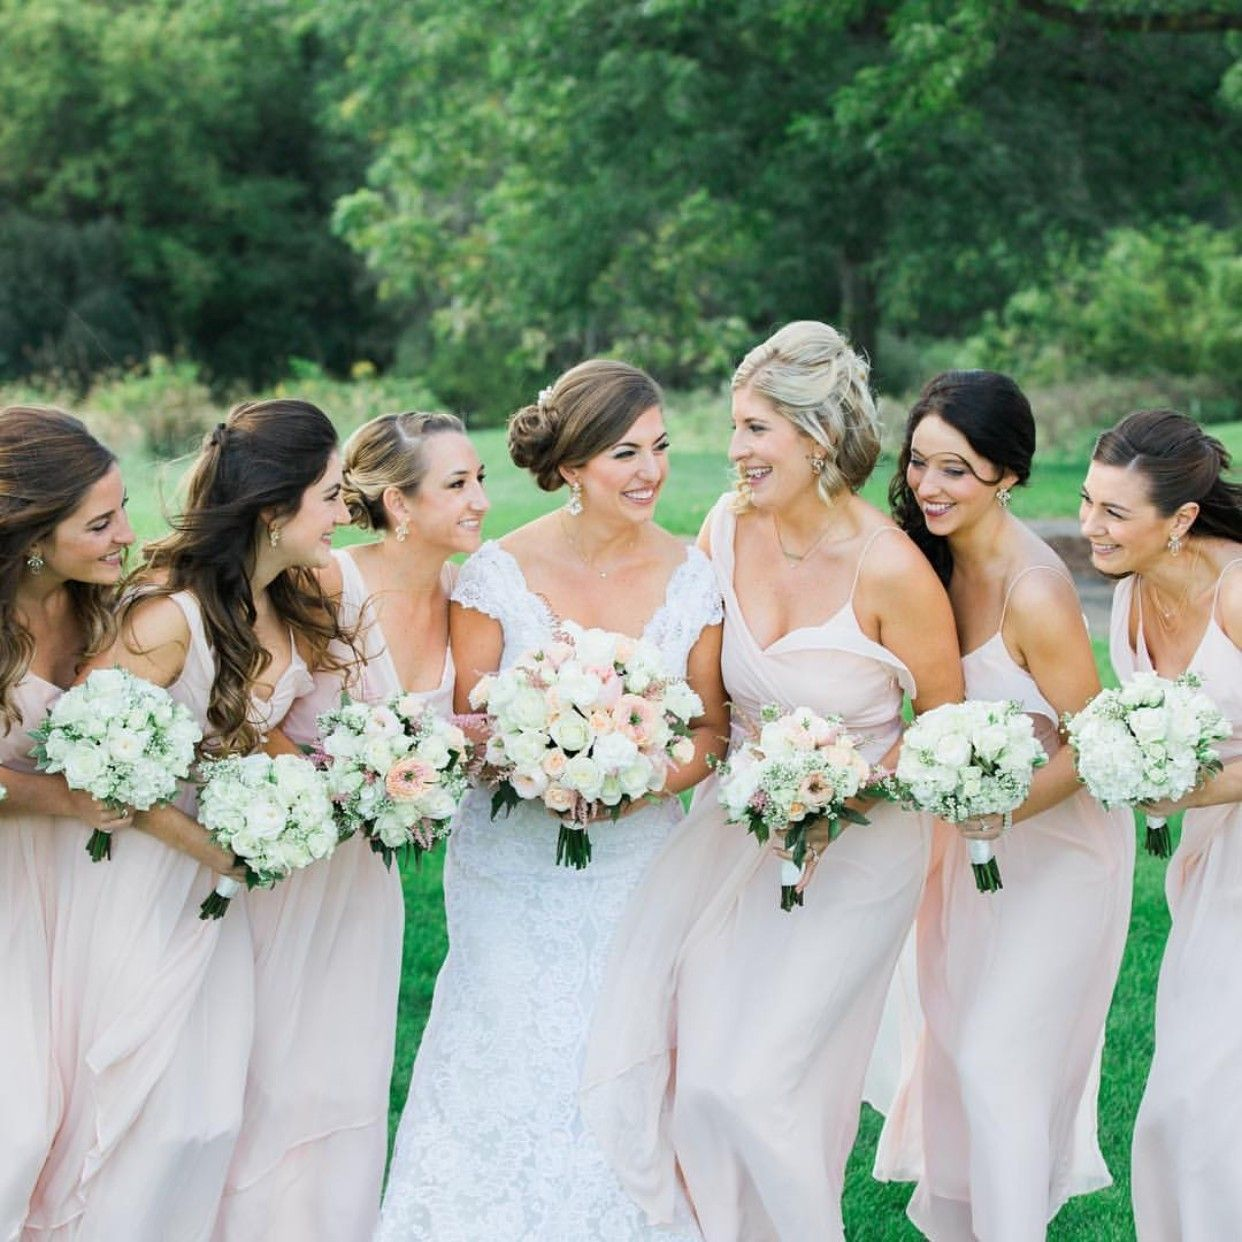 Just a bride her maids a real vow wedding blush catherine just a bride her maids a real vow wedding blush catherine bridesmaid ombrellifo Choice Image